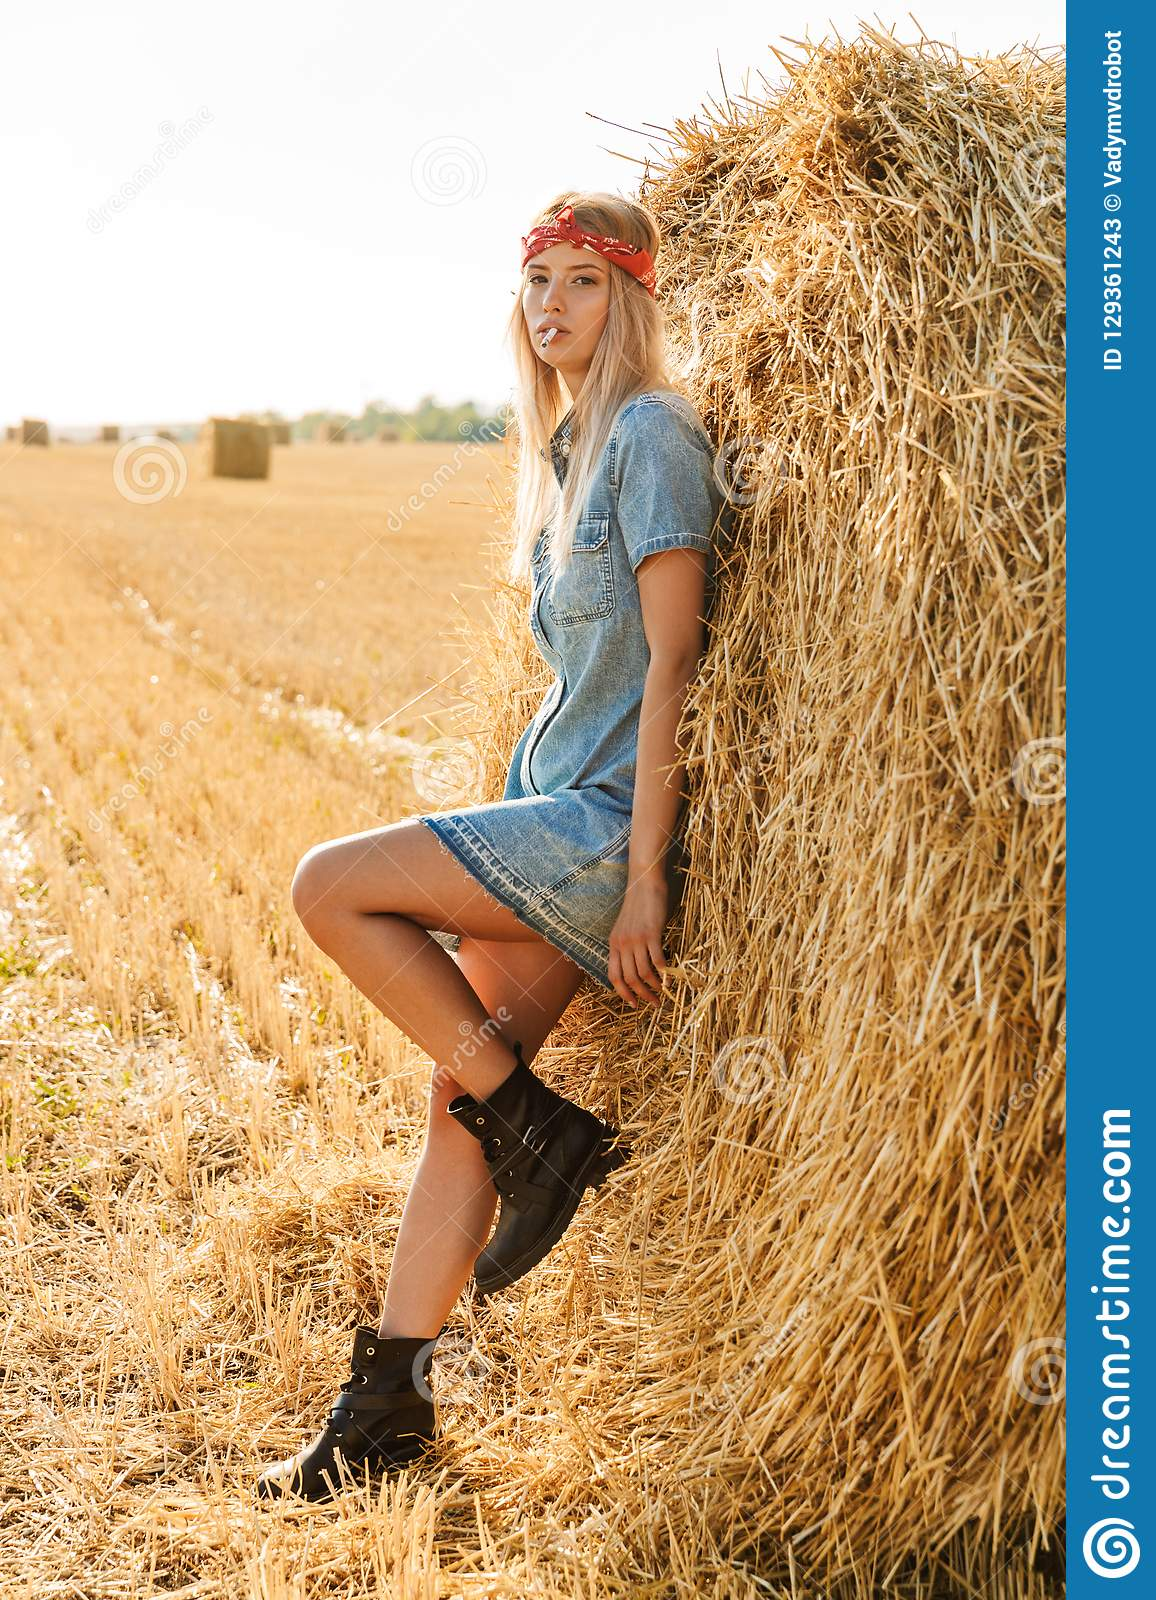 Full length image of gorgeous woman 20s standing near big haystack in golden field, and smoking cigarette during sunny day